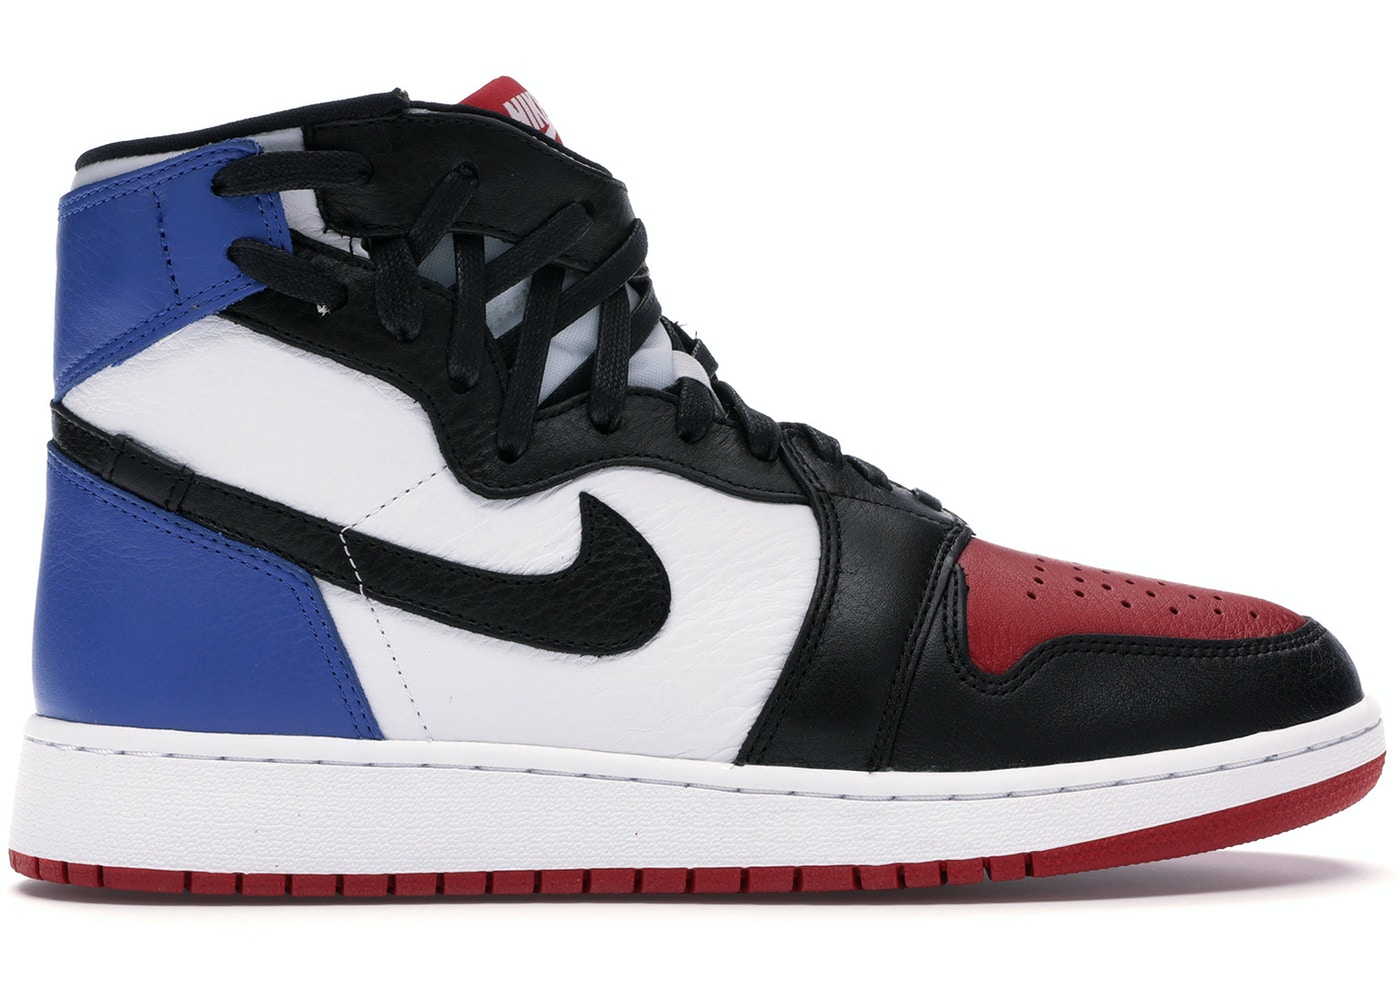 98a21d843ee Jordan 1 Rebel XX Top 3 (W) - AT4151-001